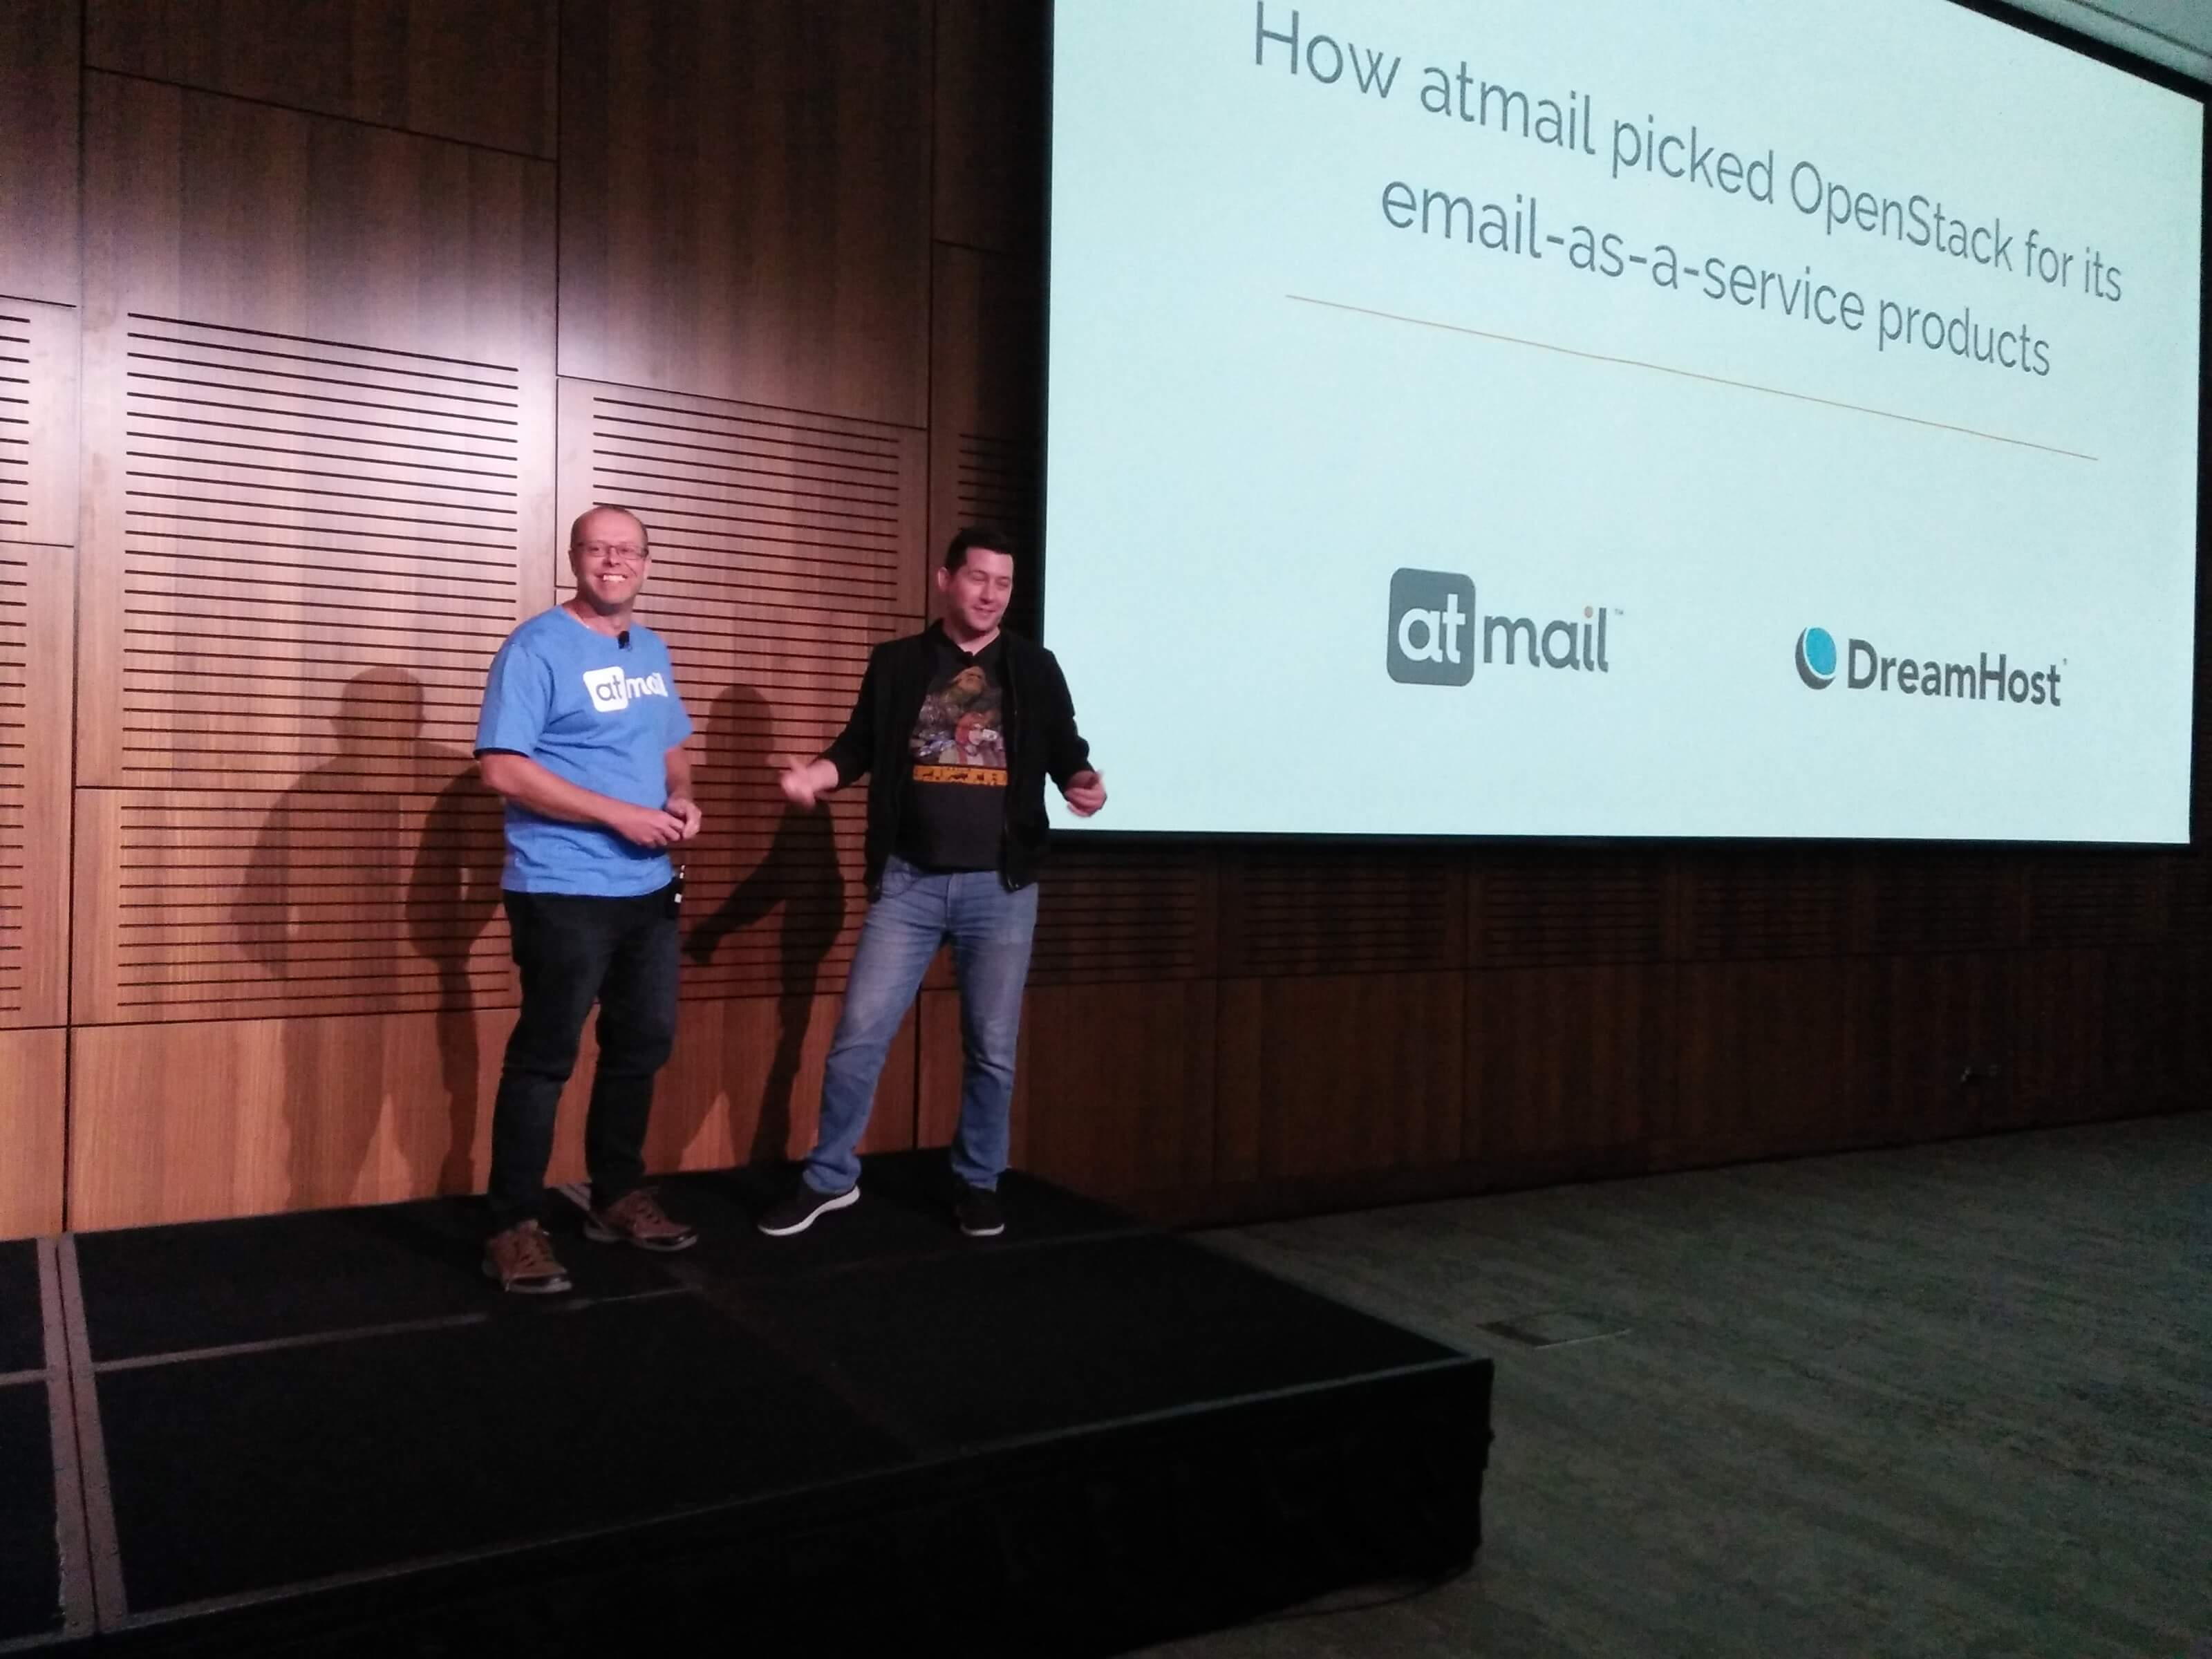 atmail and DreamHost - OpenStack Summit Sydney - Copyright atmail Pty Ltd 2017